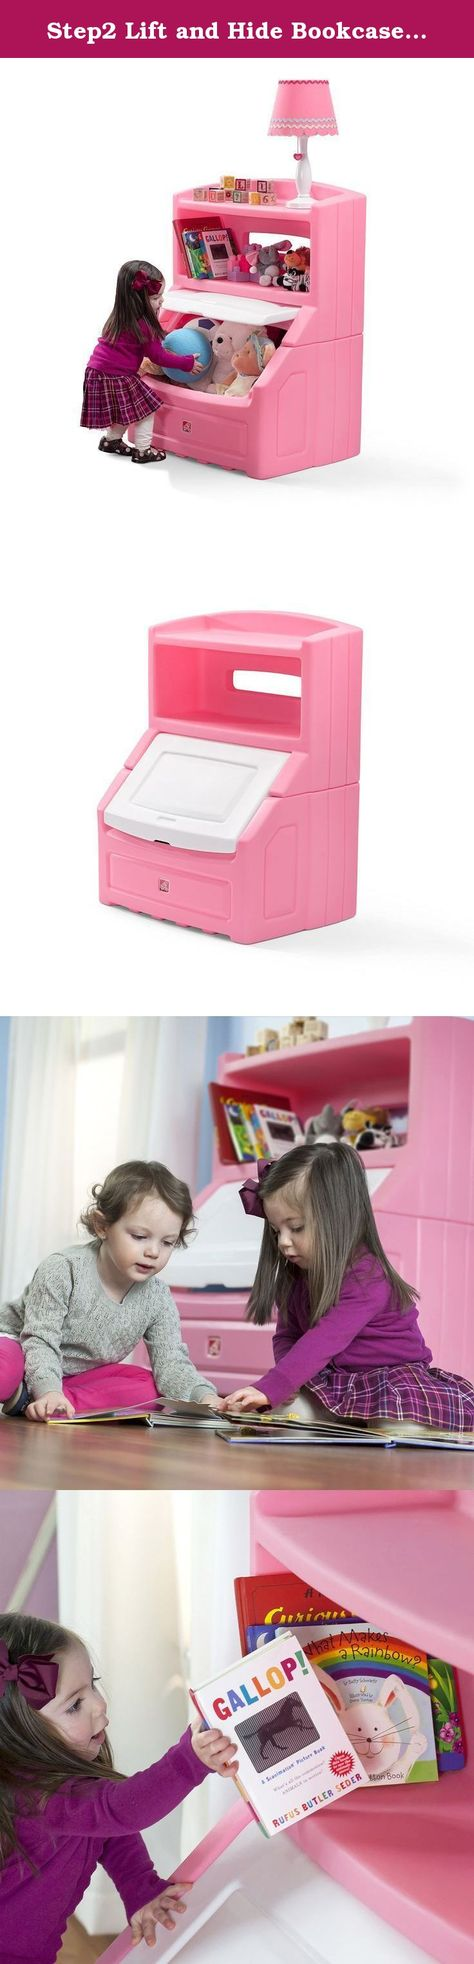 Step2 Lift And Hide Bookcase Storage Chest Pink The Step2 Lift Hide Bookcase Storage Chest Is The Per Bookcase Storage Toy Boxes Kids Furniture